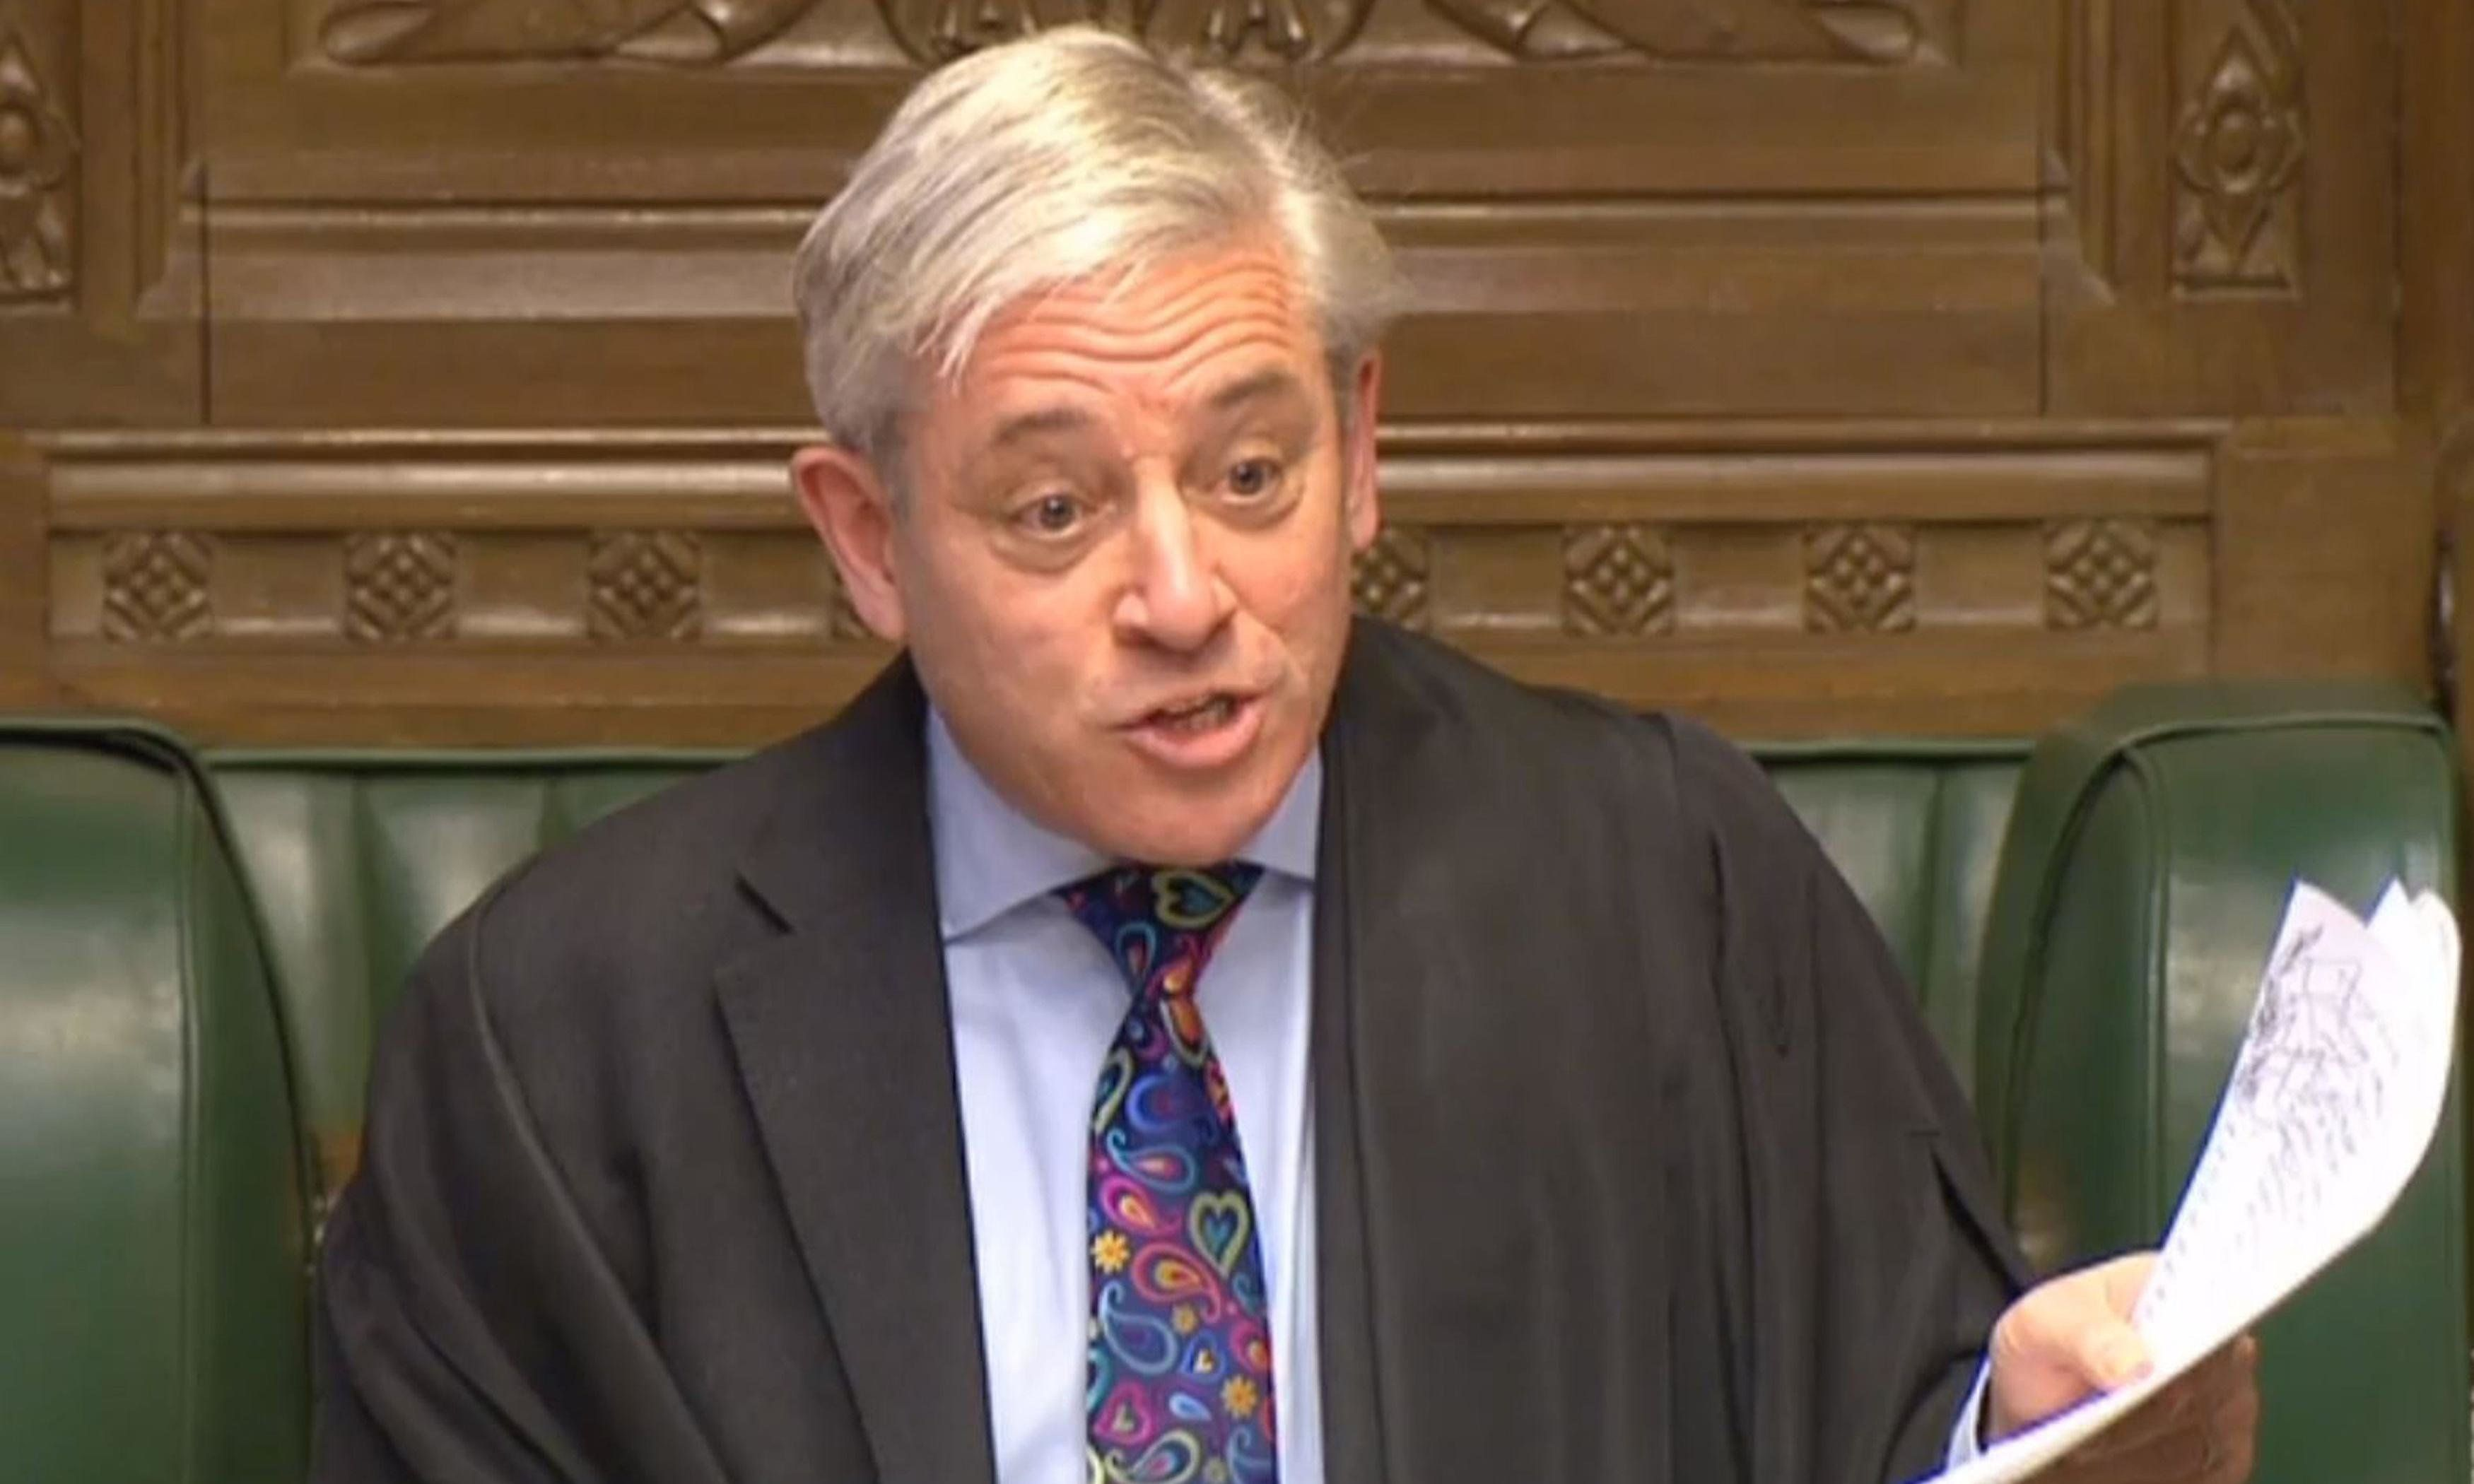 'Ban Trump' UK Parliament Speaker Urged to Quit After Bullying Claims